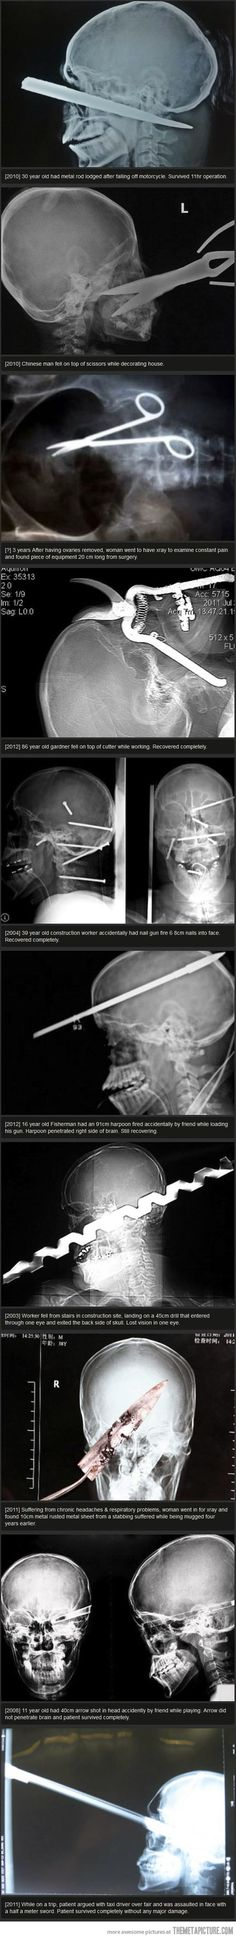 Some of the most bizarre X-Rays…